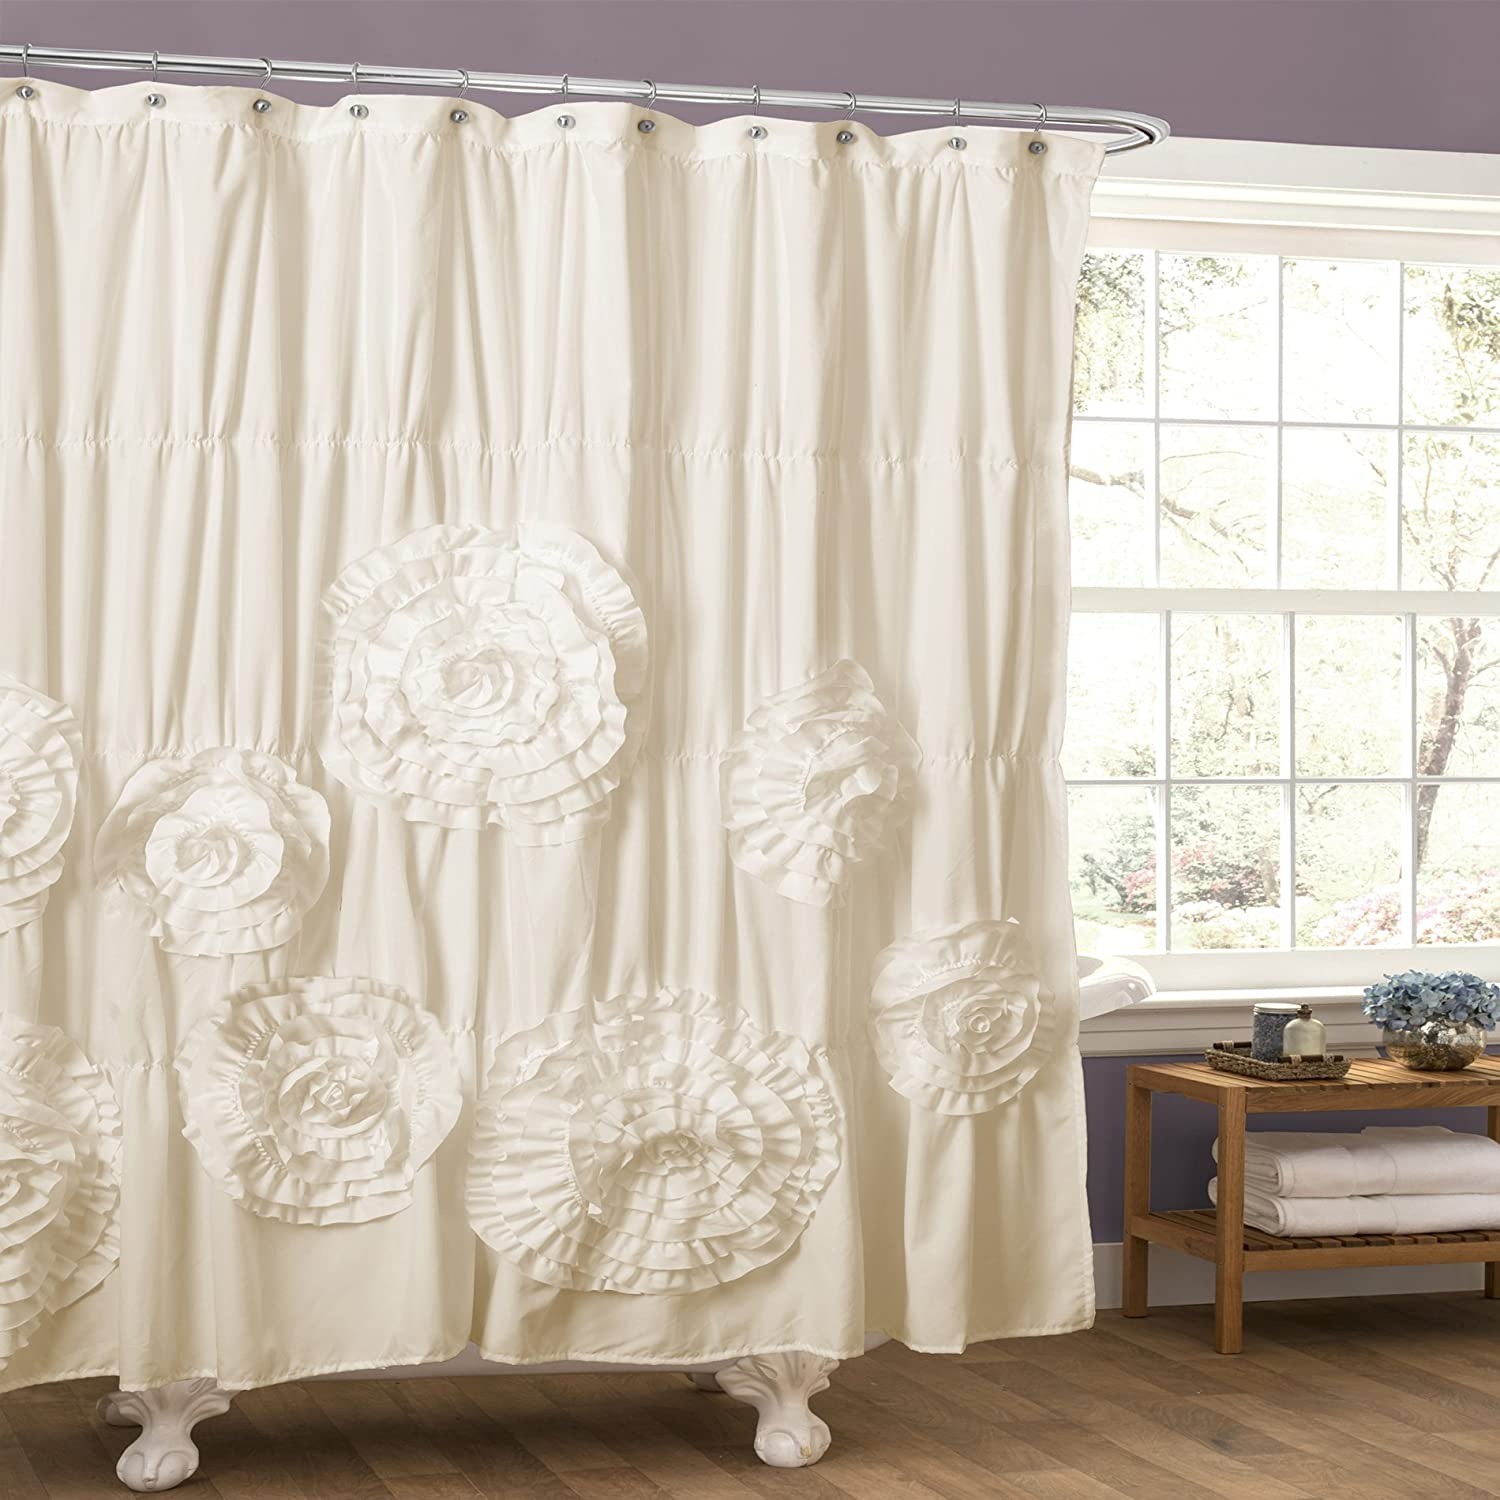 "Lush Decor Serena Shower Curtain Ruffled Floral Shabby Chic Farmhouse Style Bathroom Decor 72"" x 72"" Ivory"